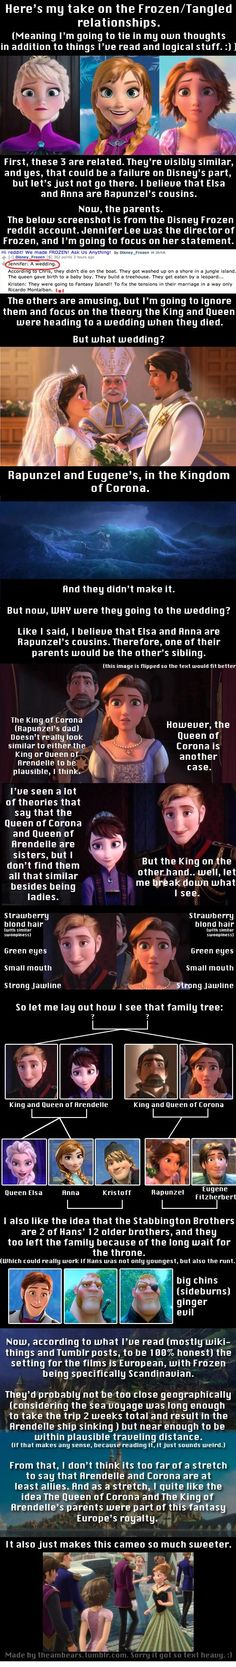 boy do I LOOOOOOOOOVE Disney conspiracies lol